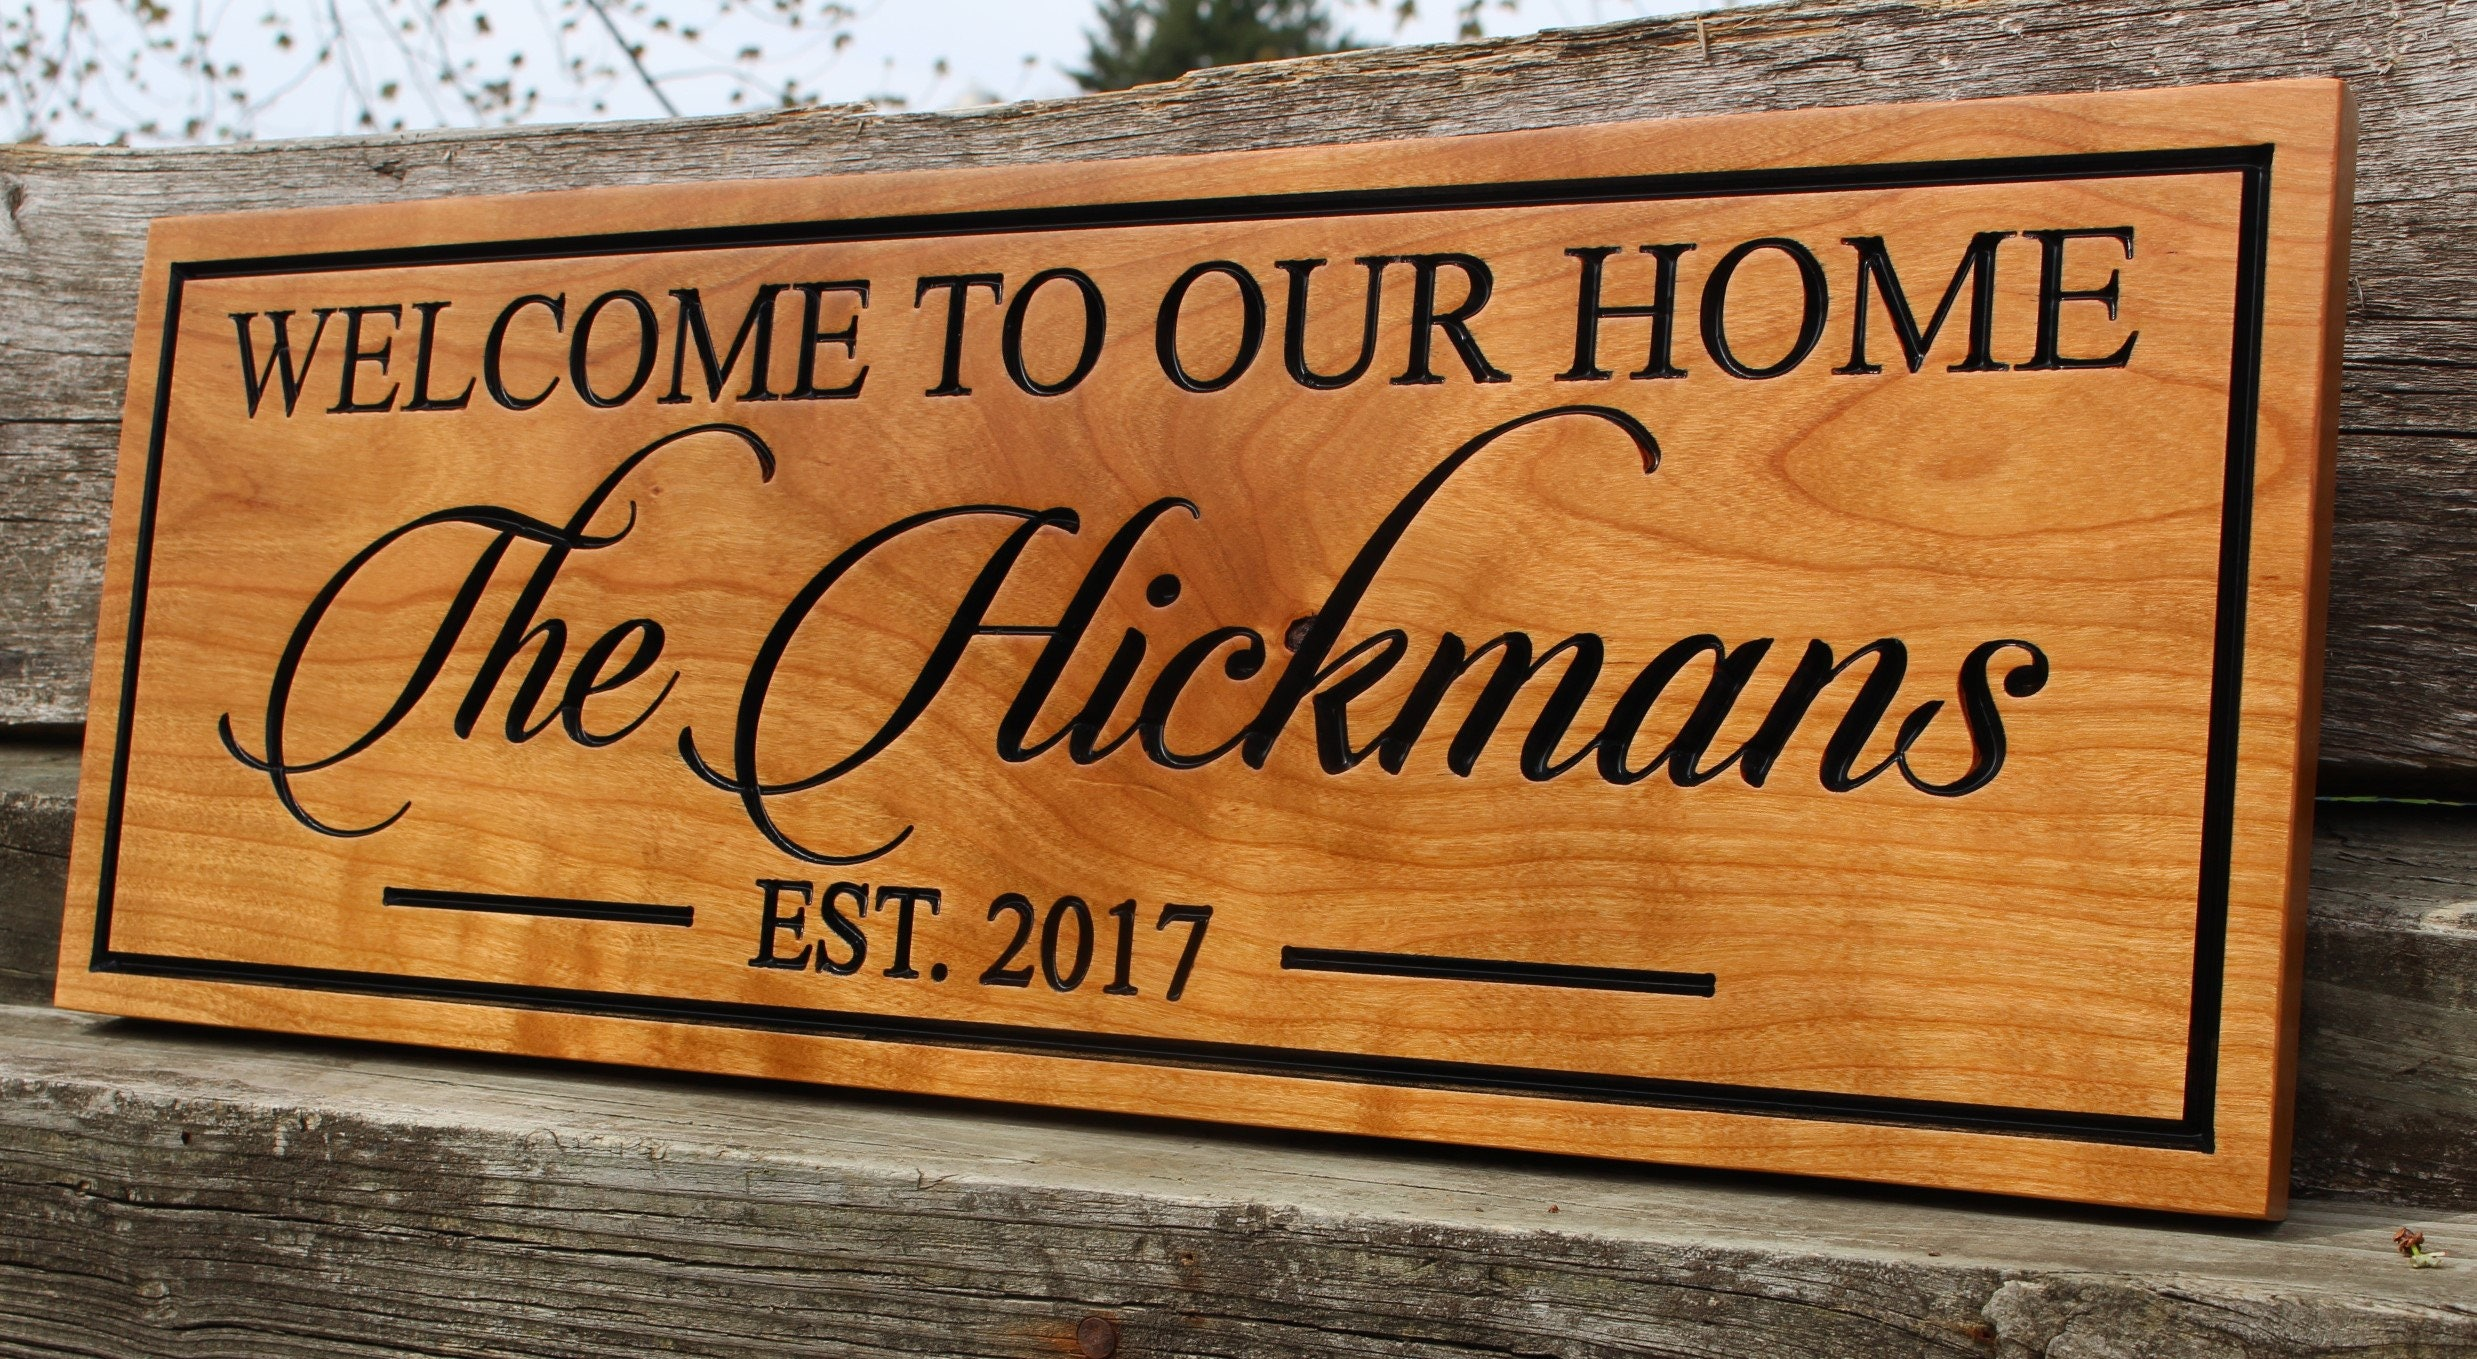 welcome signs personalized - HD2477×1359